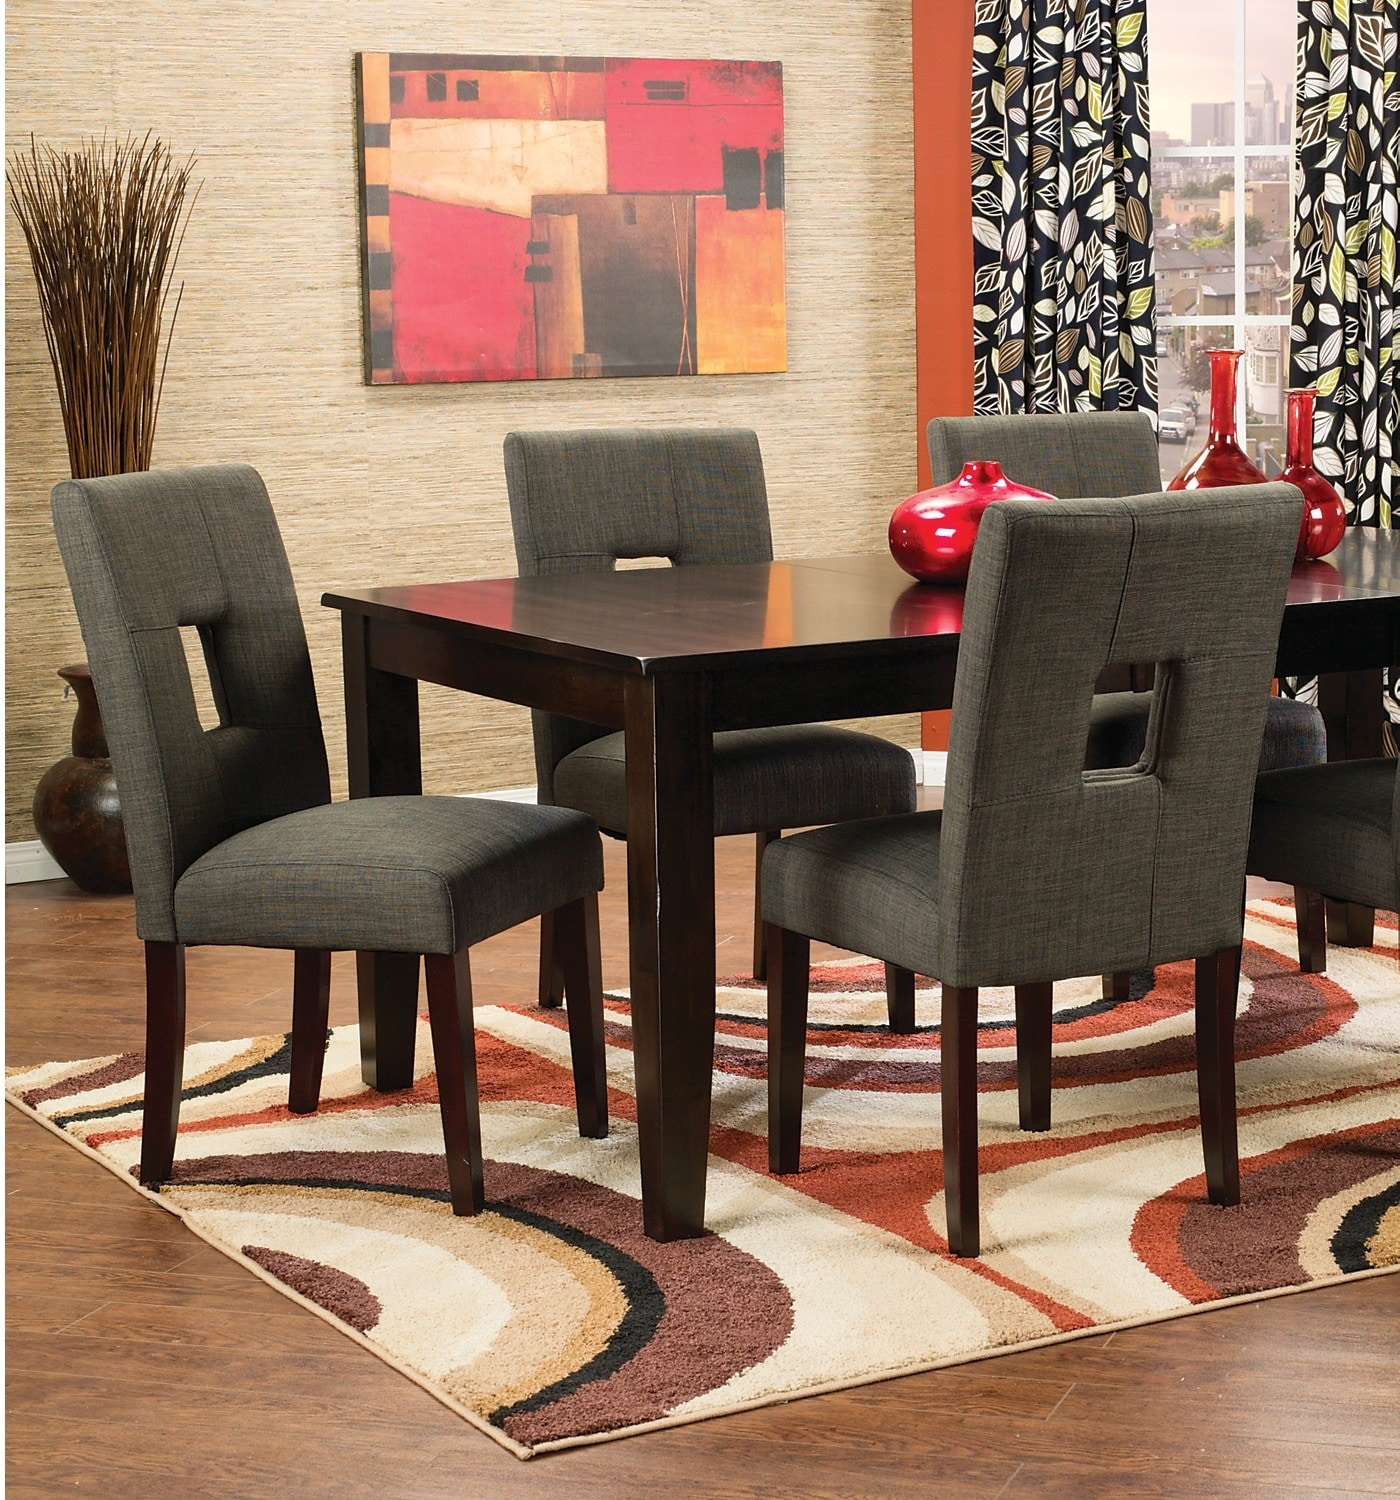 Dining Room Furniture - Dakota 5-Piece Dining Package with Grey Chairs